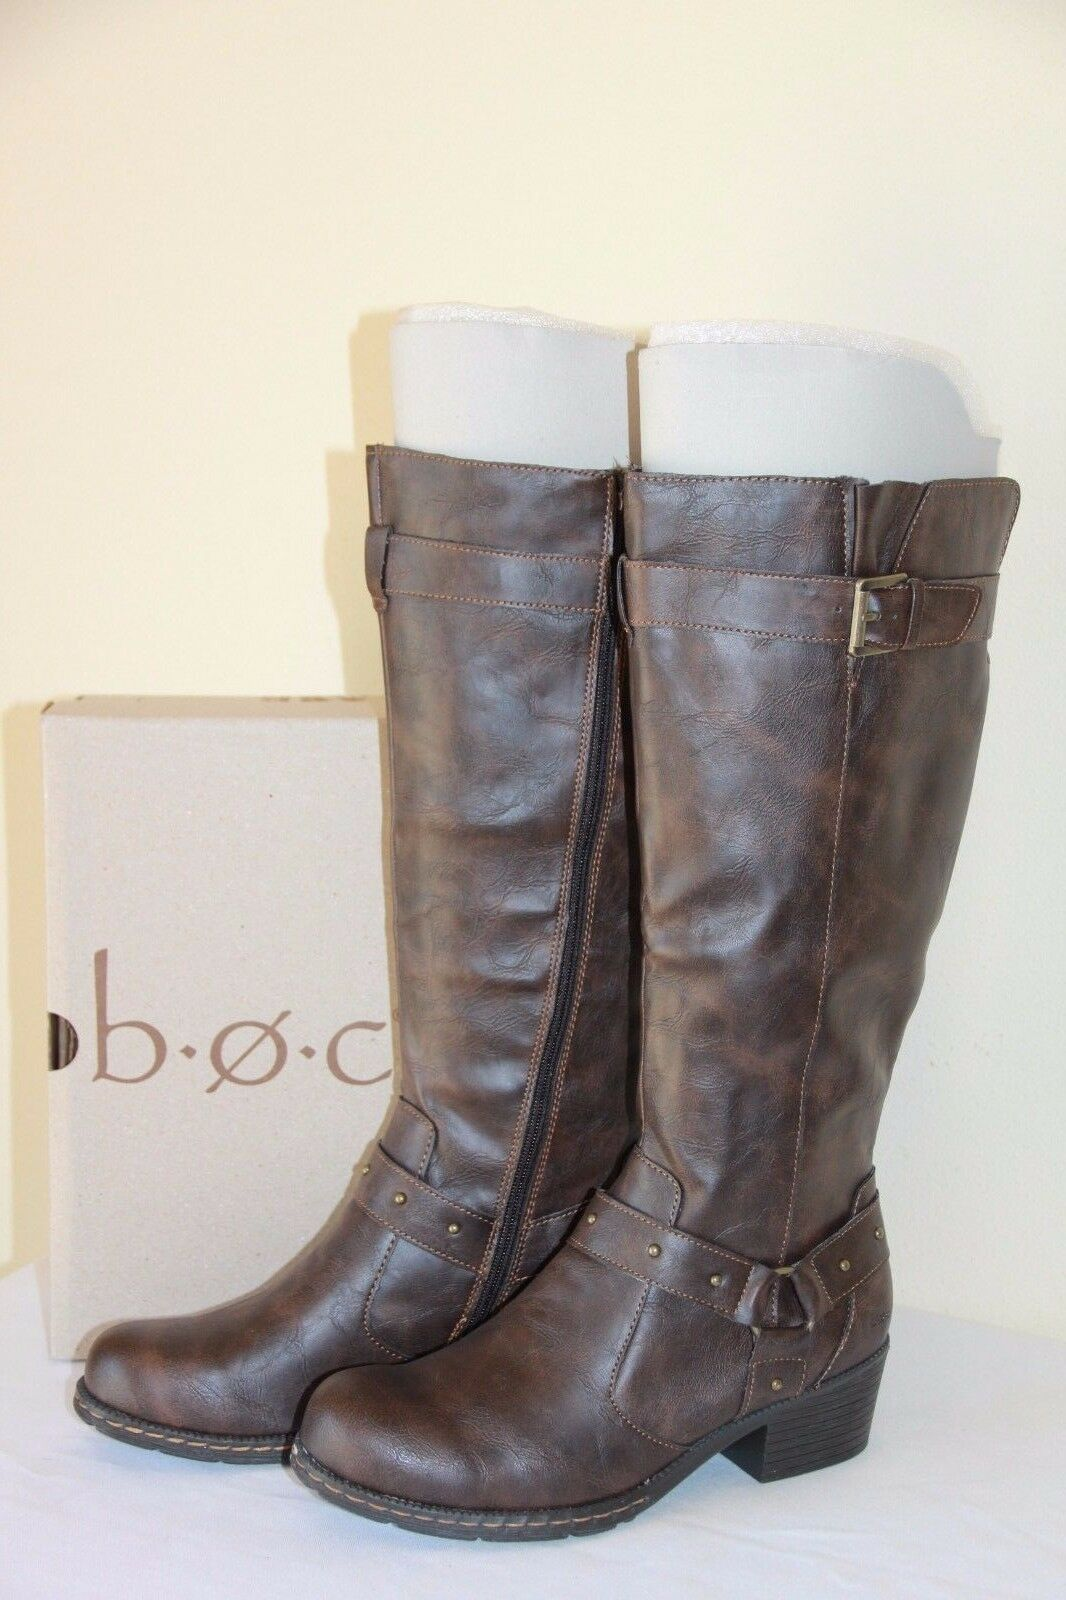 NEW B.O.C. Mahers Women's Riding Boots Winter Dark Brown Casual shoes